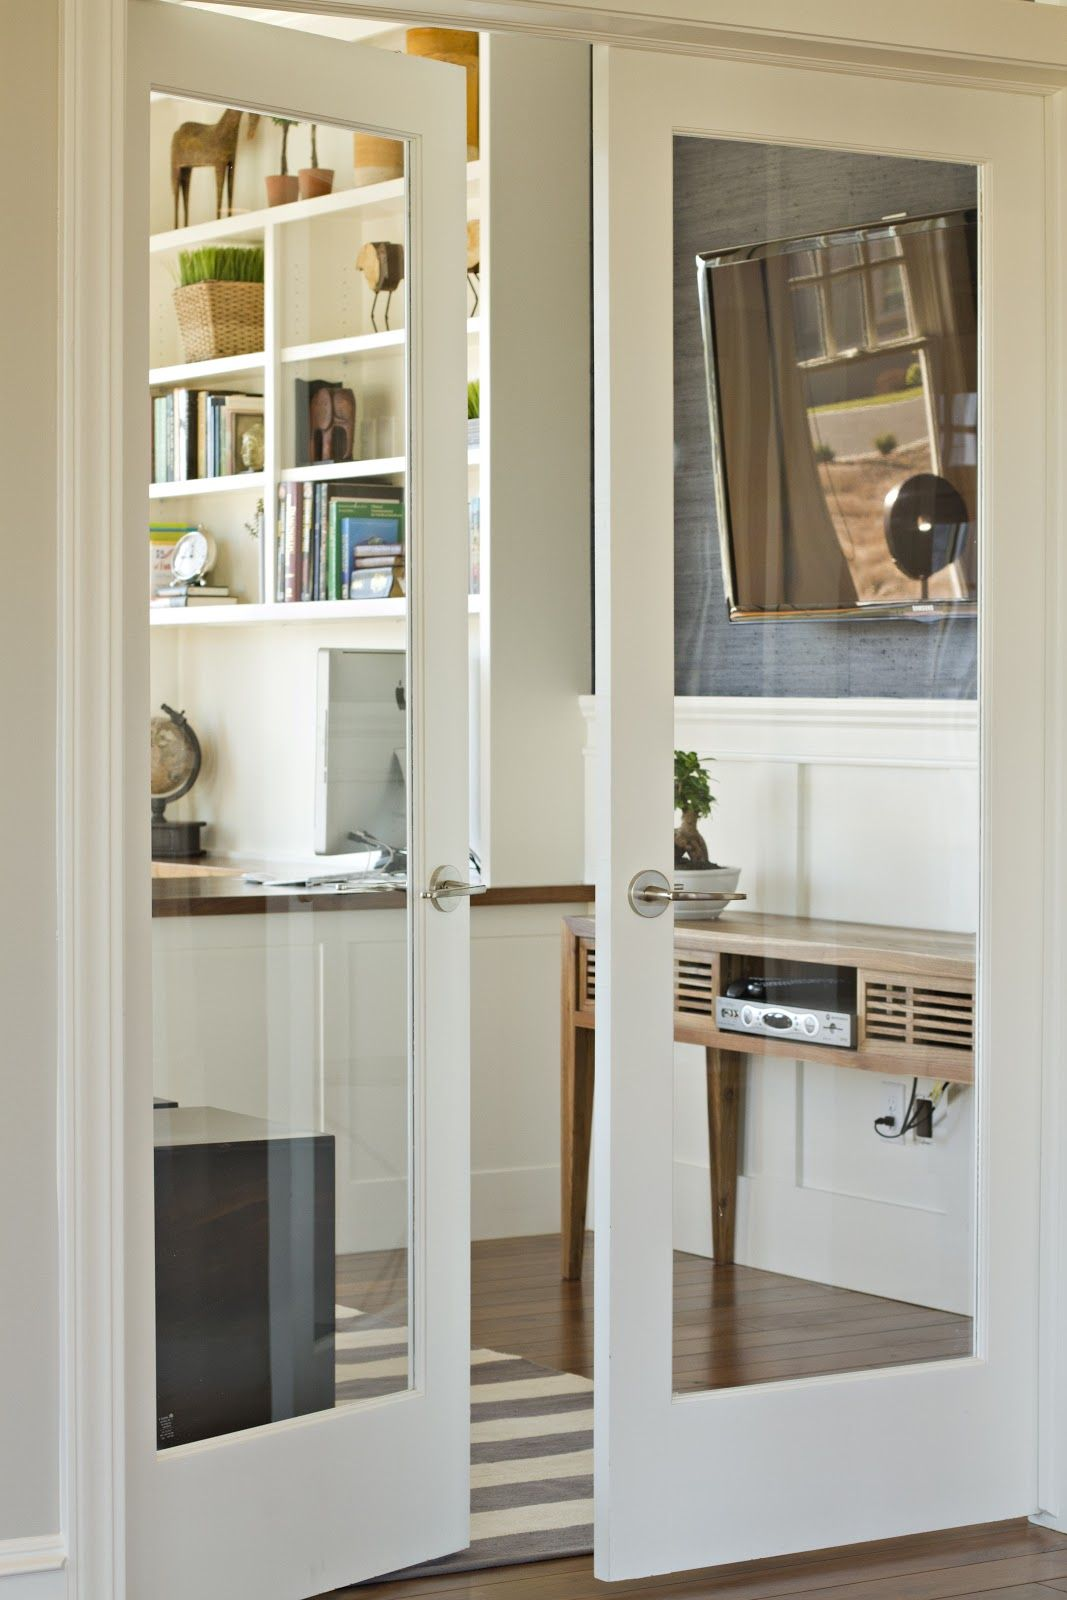 Glass Paned French Doors Workspaces Pinterest Doors Glass